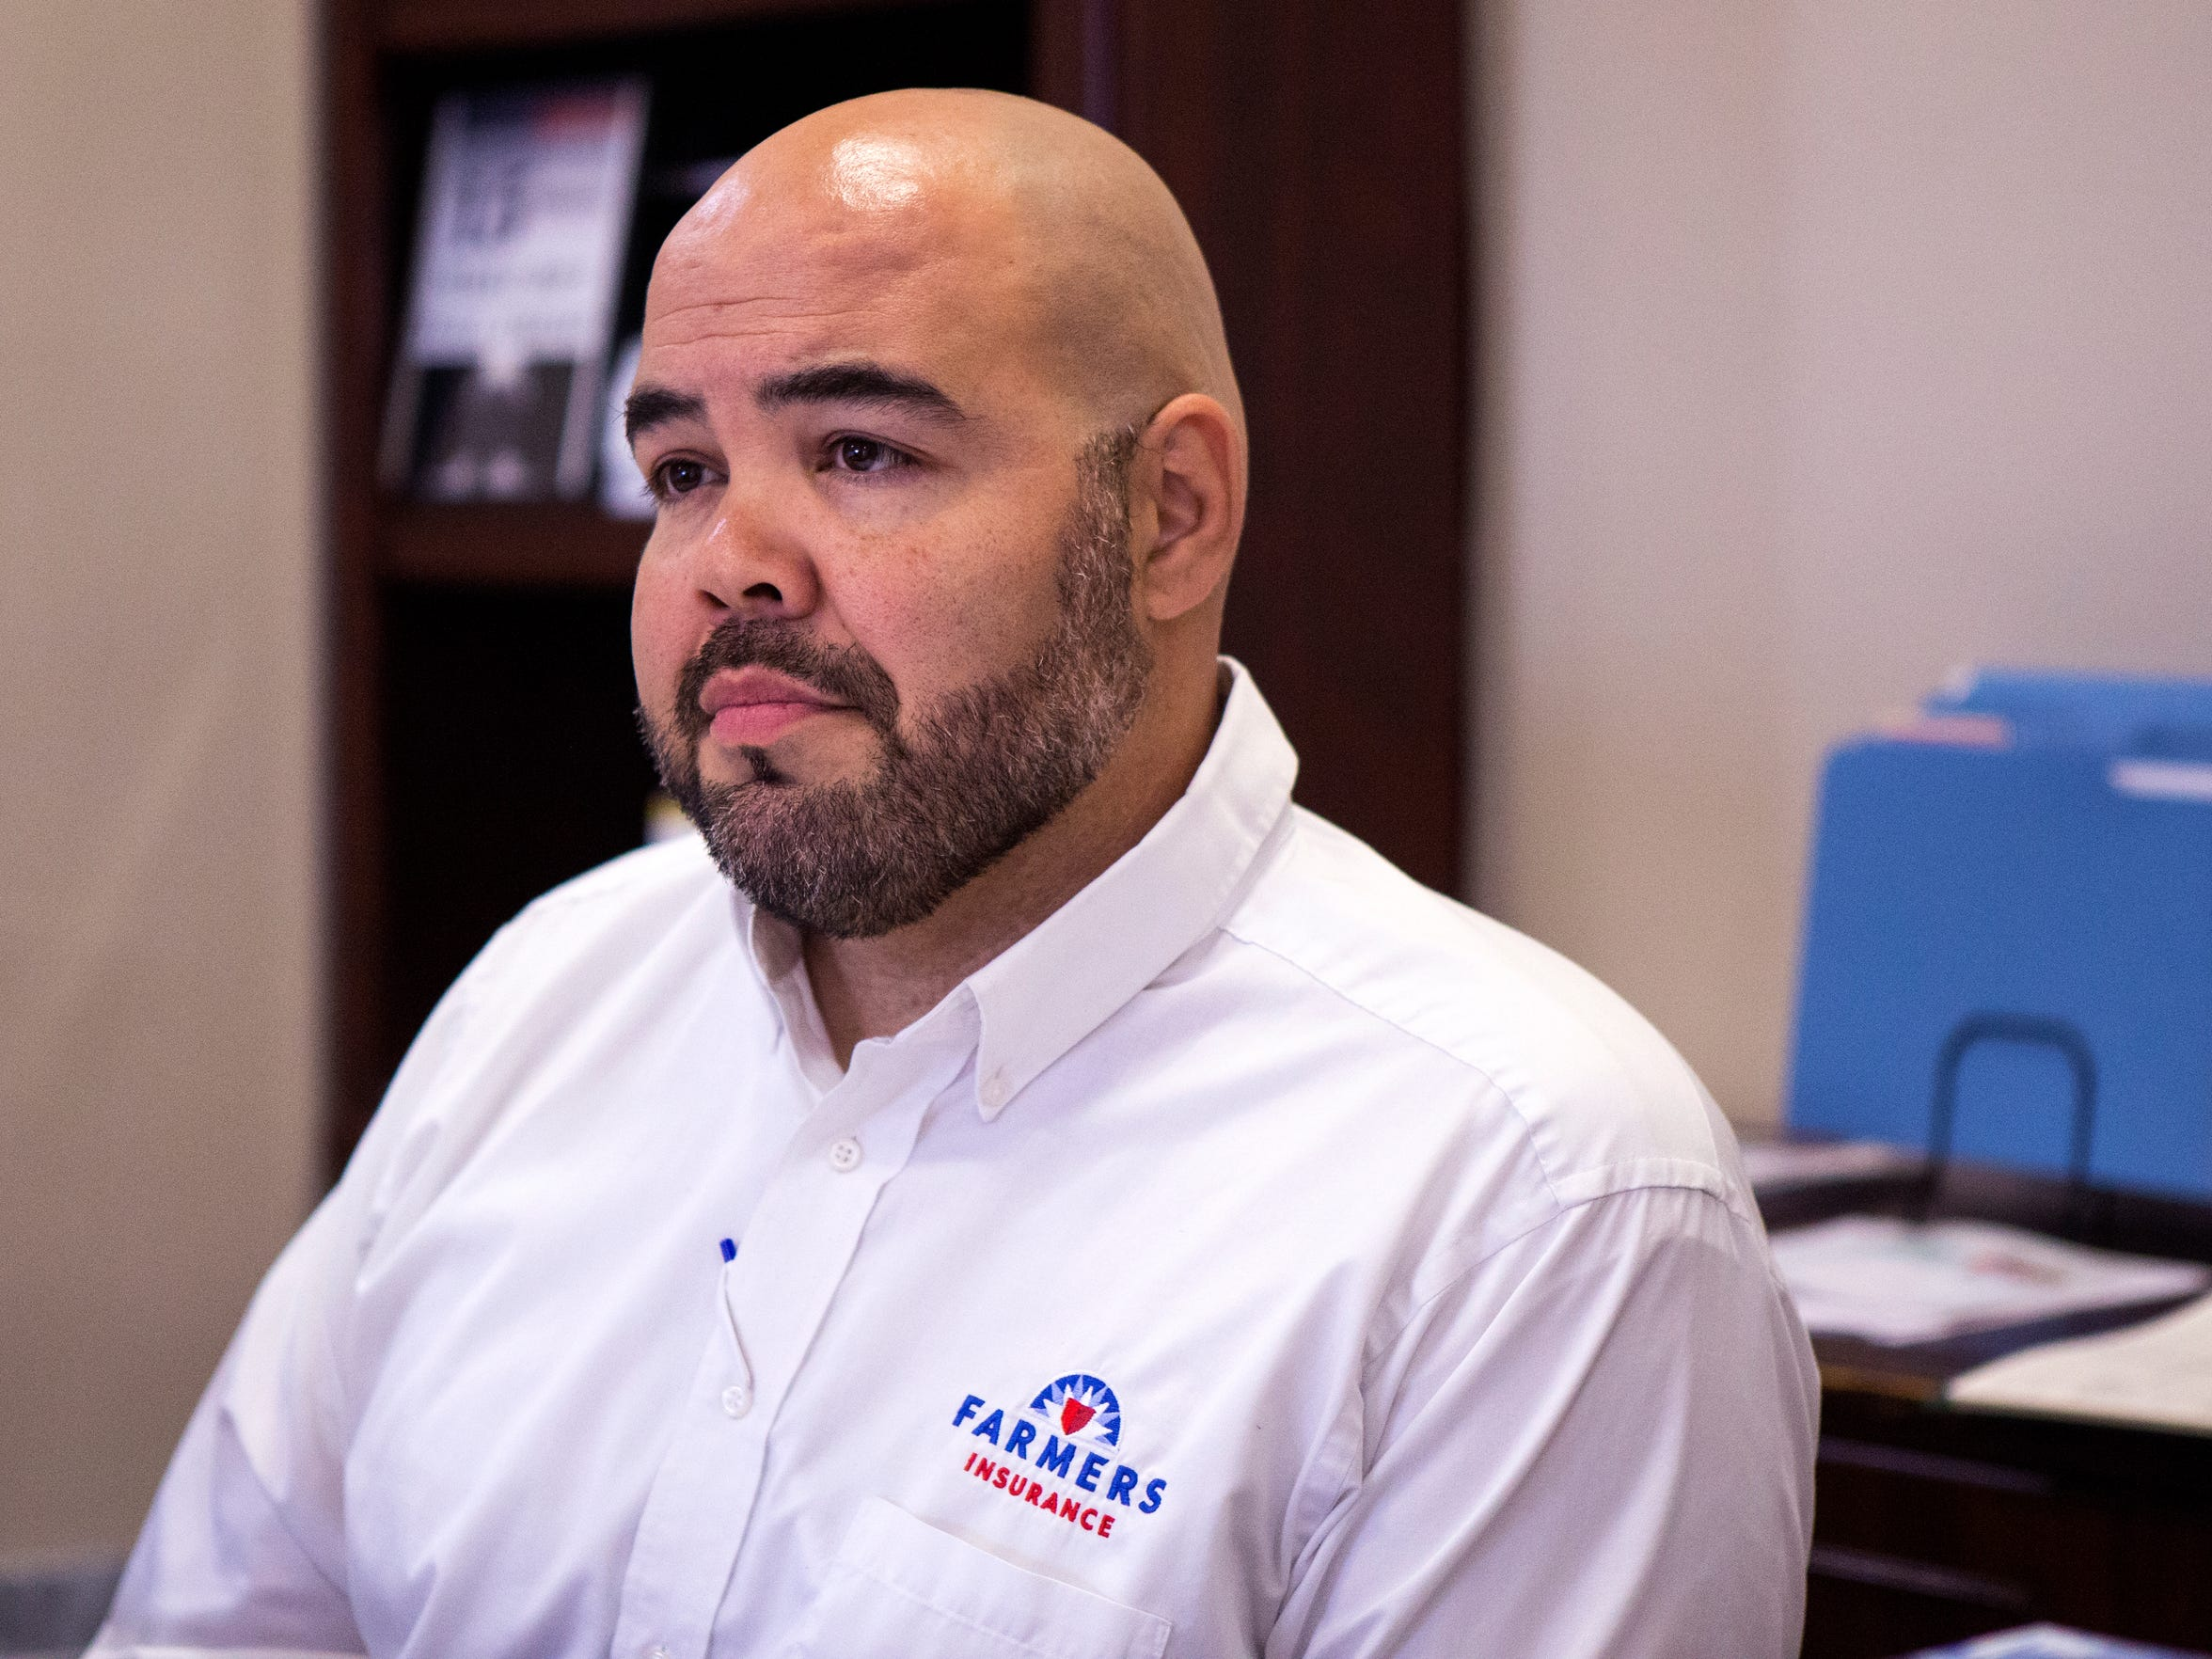 Alex Hinojosa, Farmer's Insurance Agent in Aransas Pass, talks about the changes in flood insurance coming to the area near the town's uncertified levee. He hopes that it won't just his voice saying flood insurance is needed.